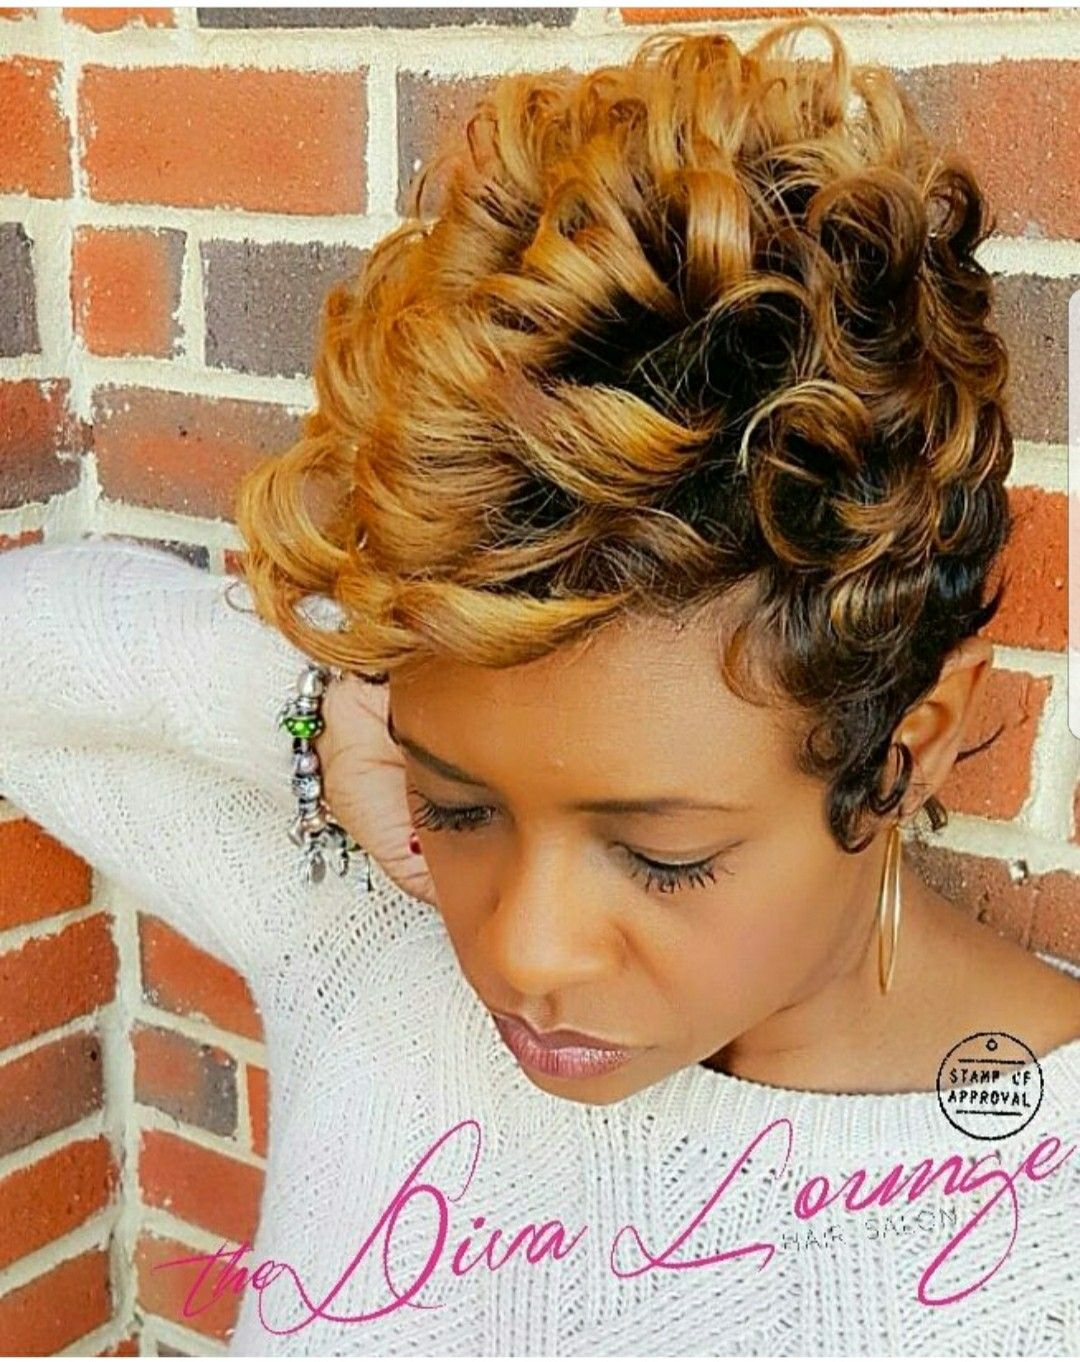 The diva lounge hair larnetta moncrief montgomery alabama short